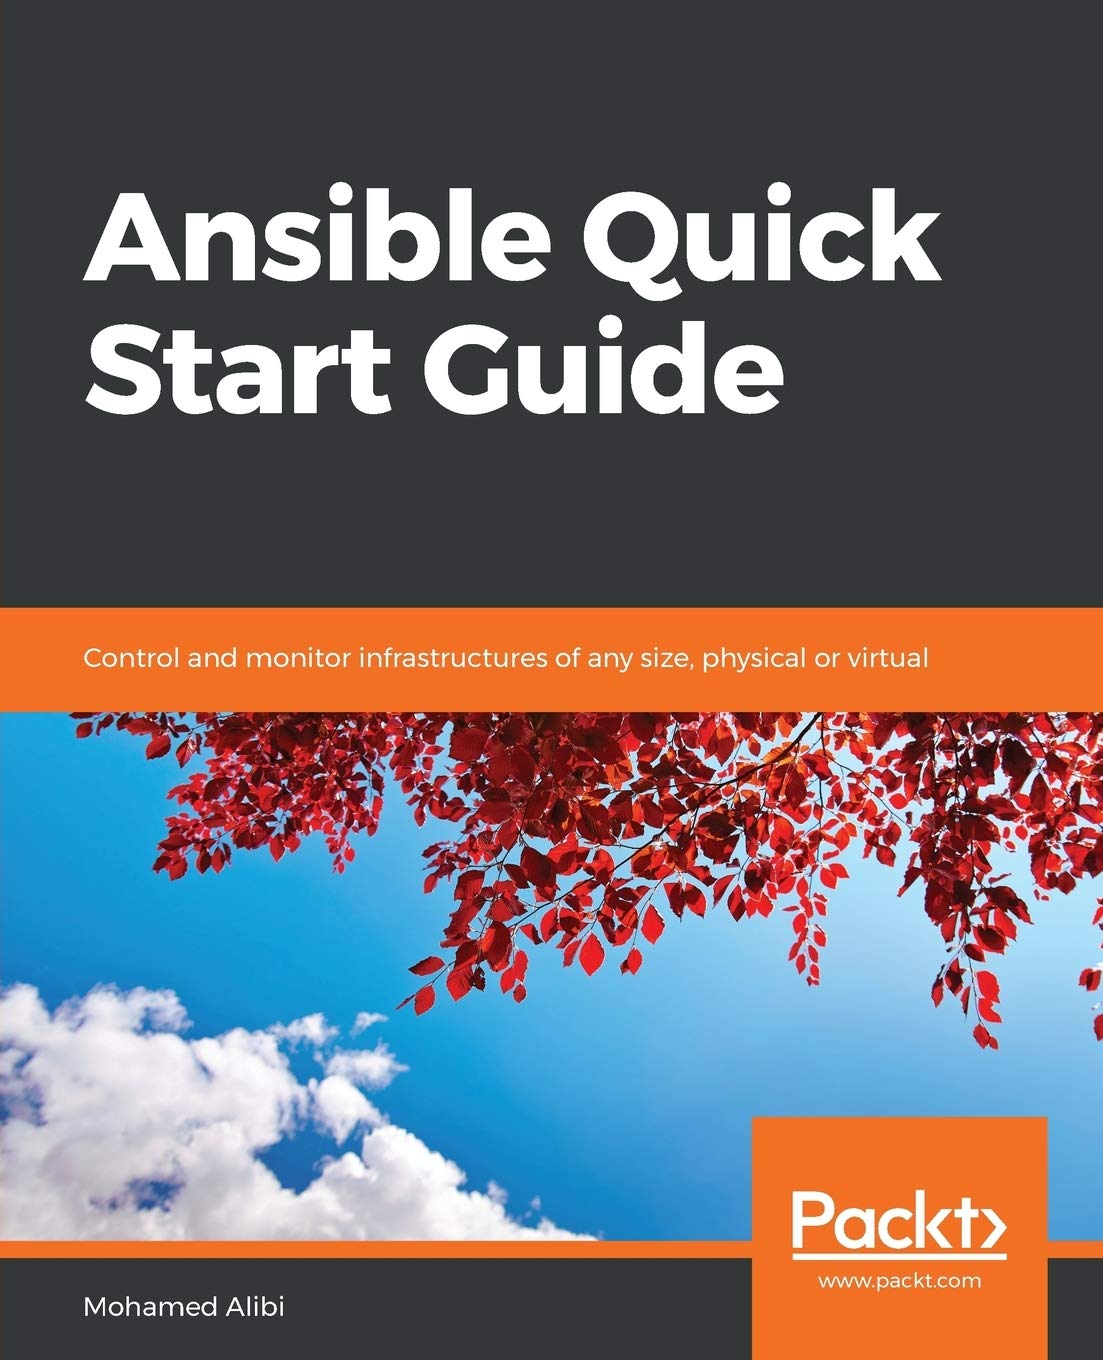 Image OfAnsible Quick Start Guide: Control And Monitor Infrastructures Of Any Size, Physical Or Virtual